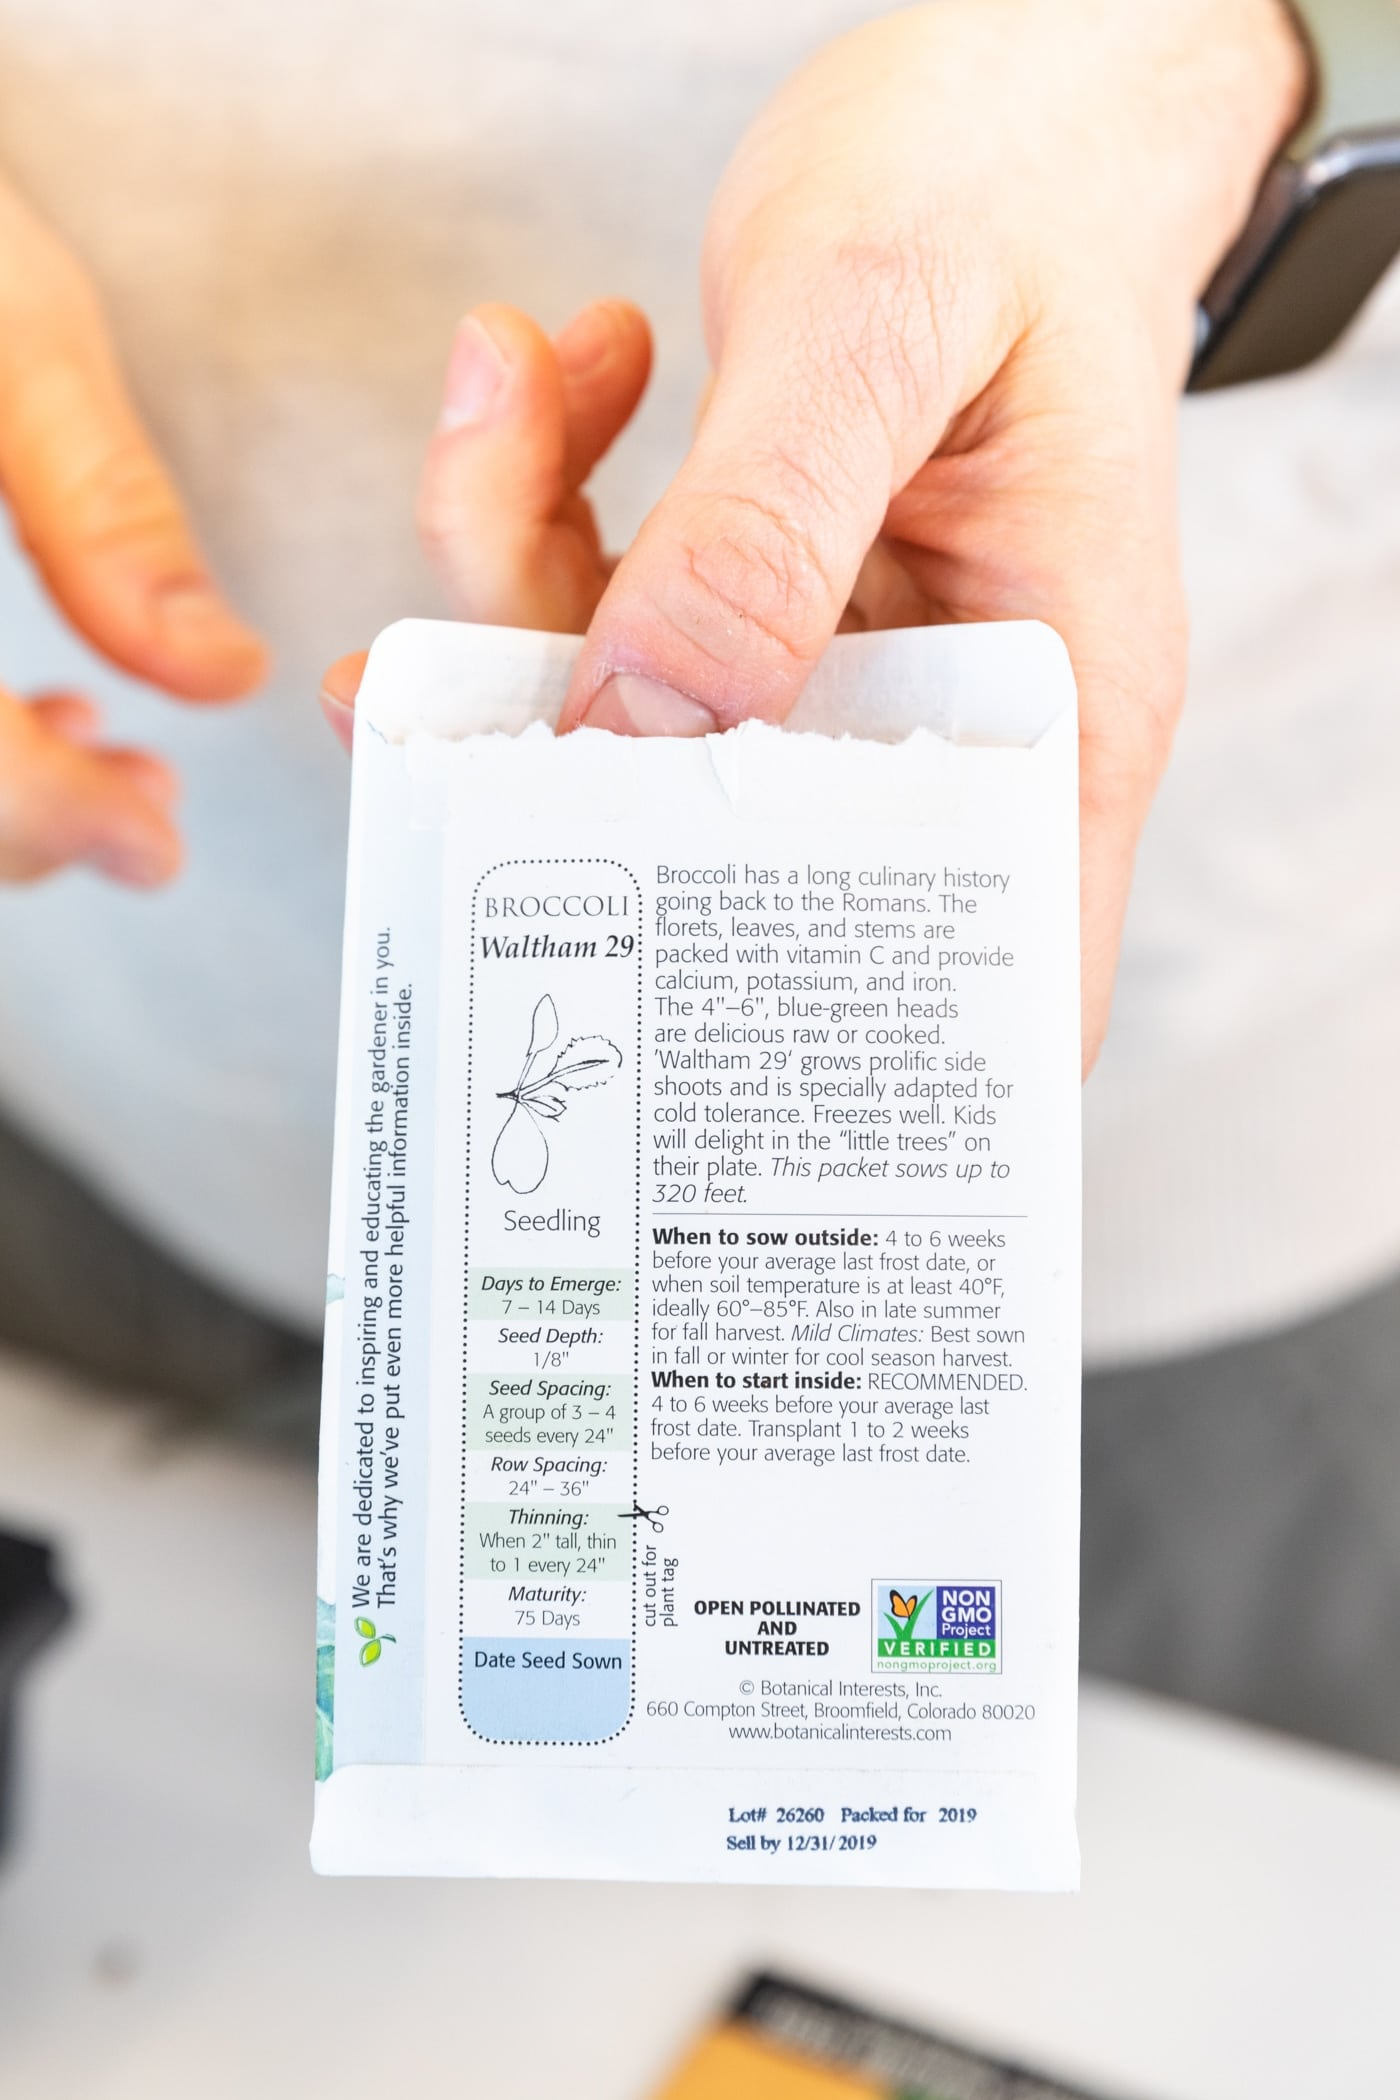 Hand holding seed packet with lots of writing on the back in front of a white countertop